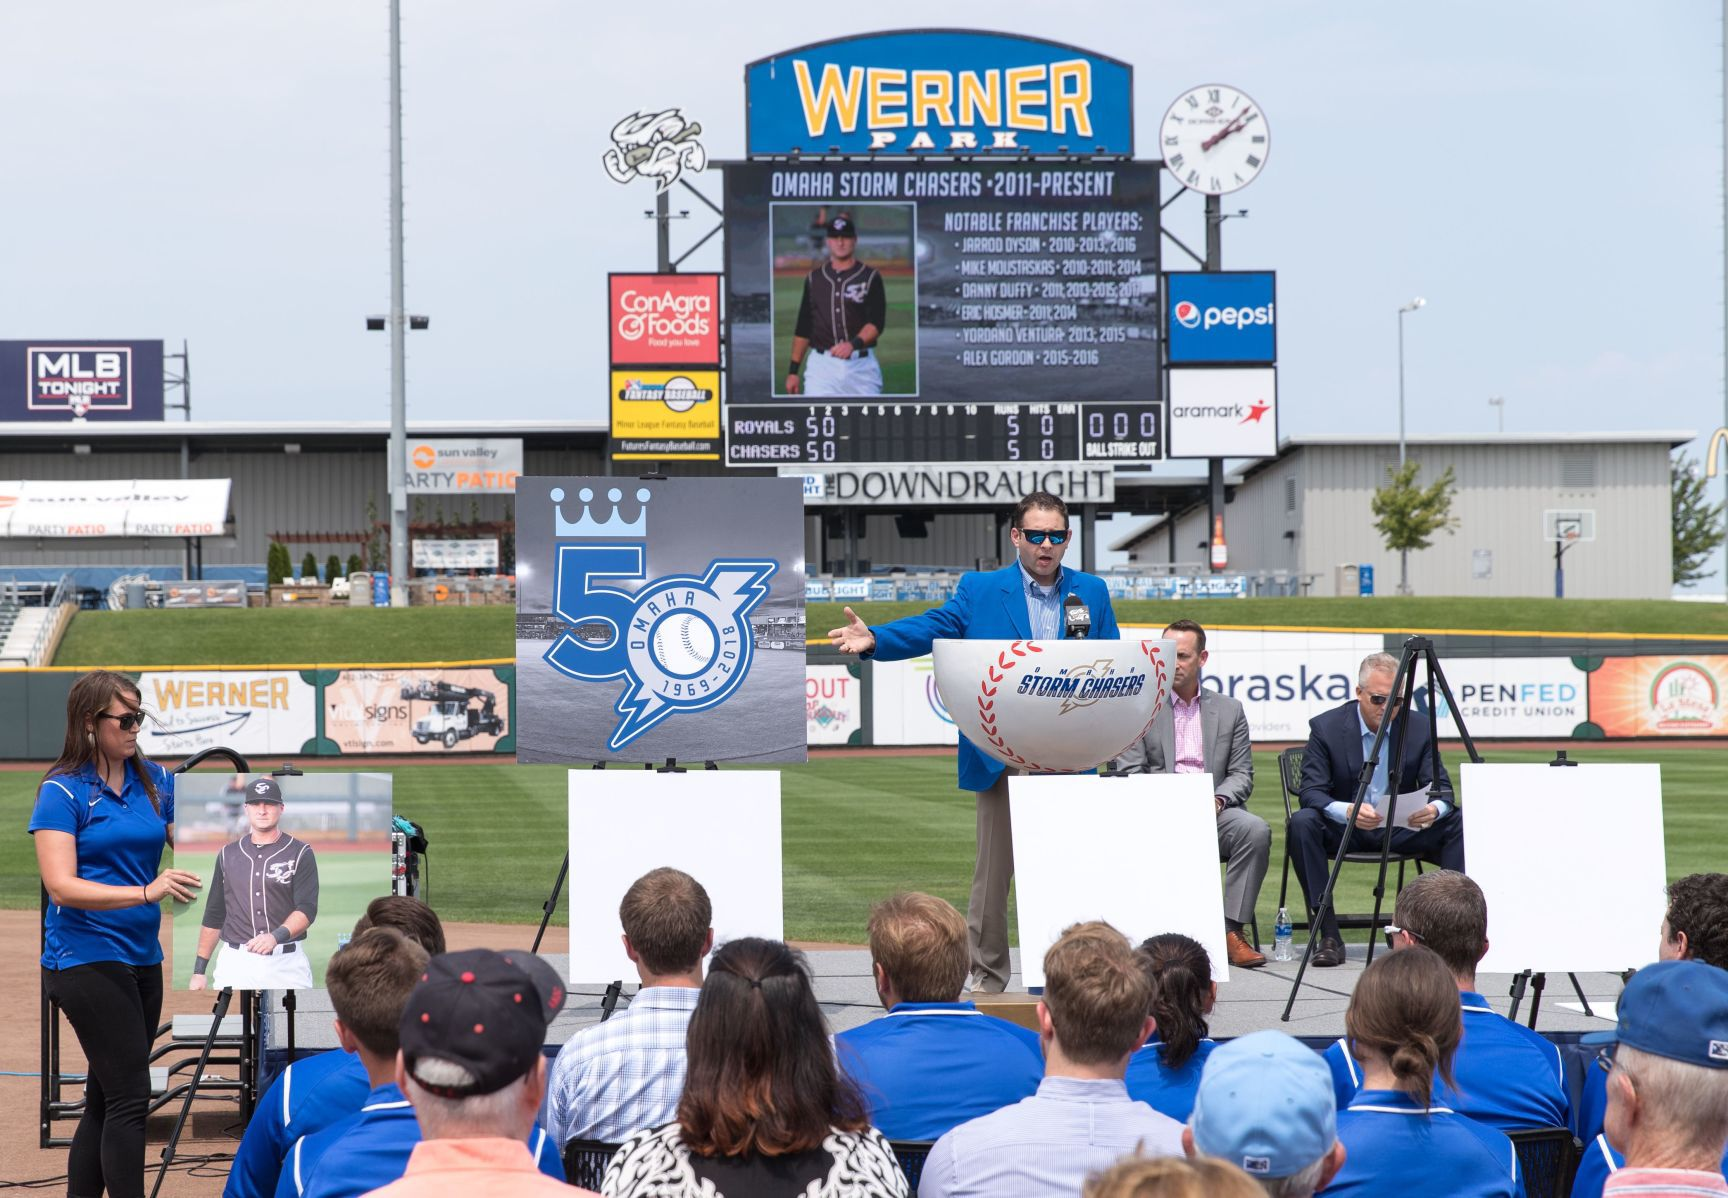 Werner Park field will be ready; Royals, Chasers say let's play ball after last year's rainout